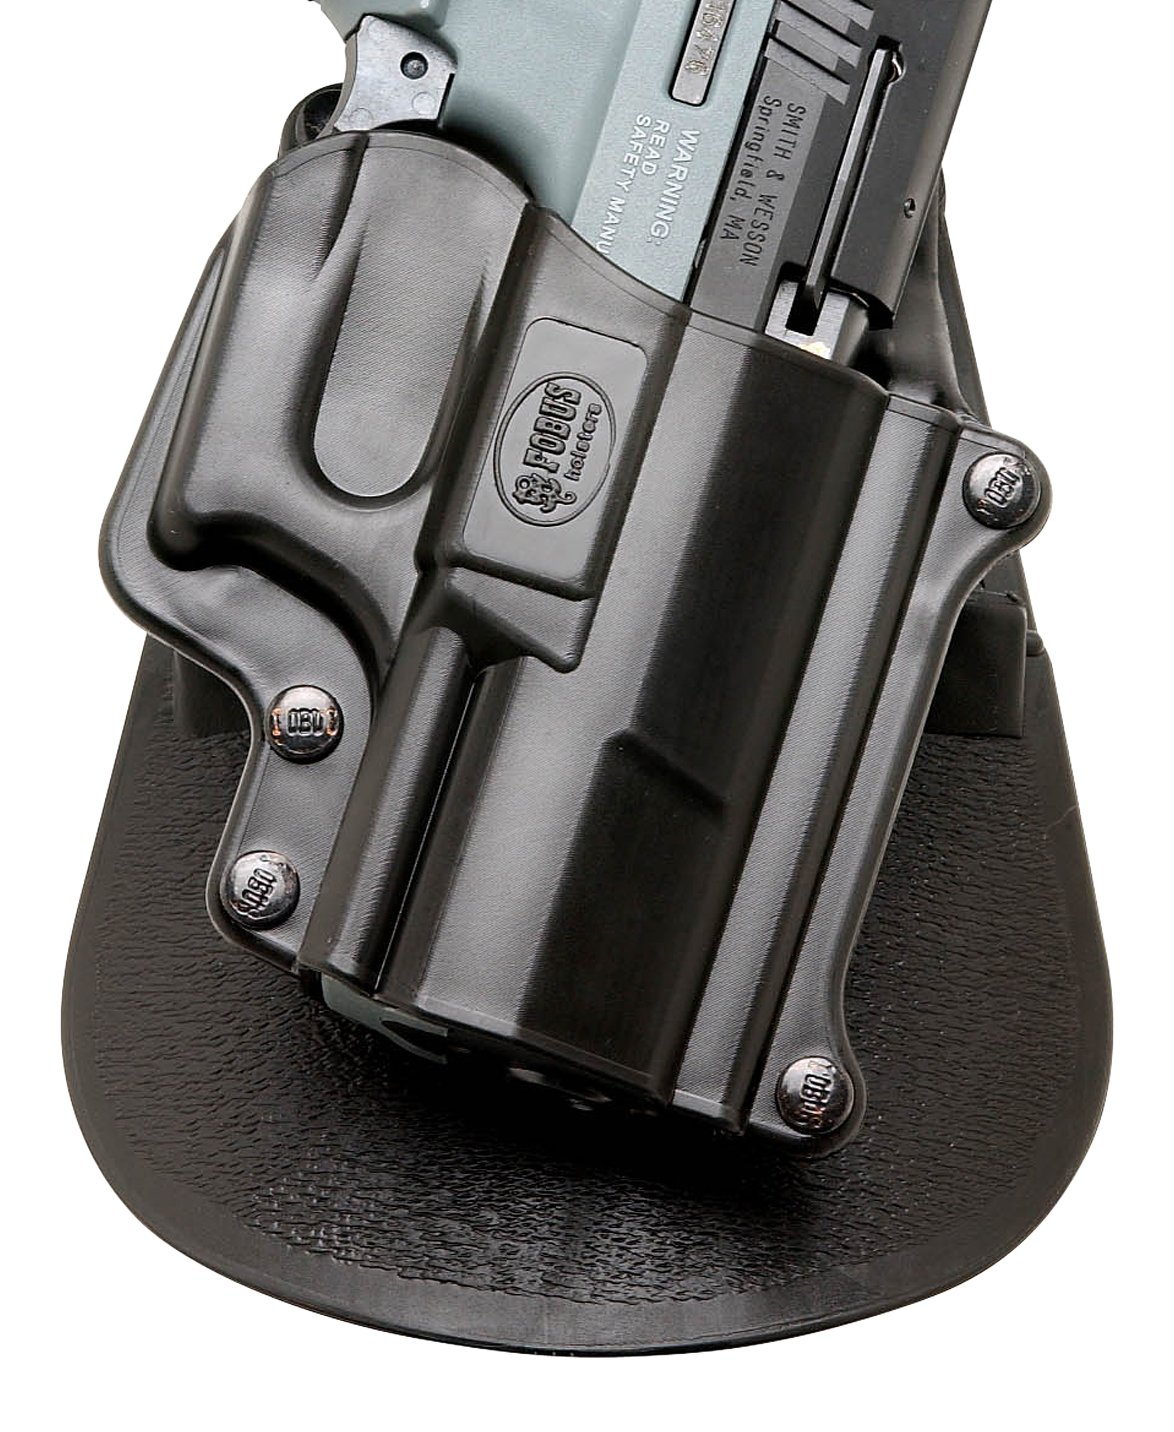 Fobus Standard Holster RH Belt WP22BH Walther Model P22 FOWP22BH